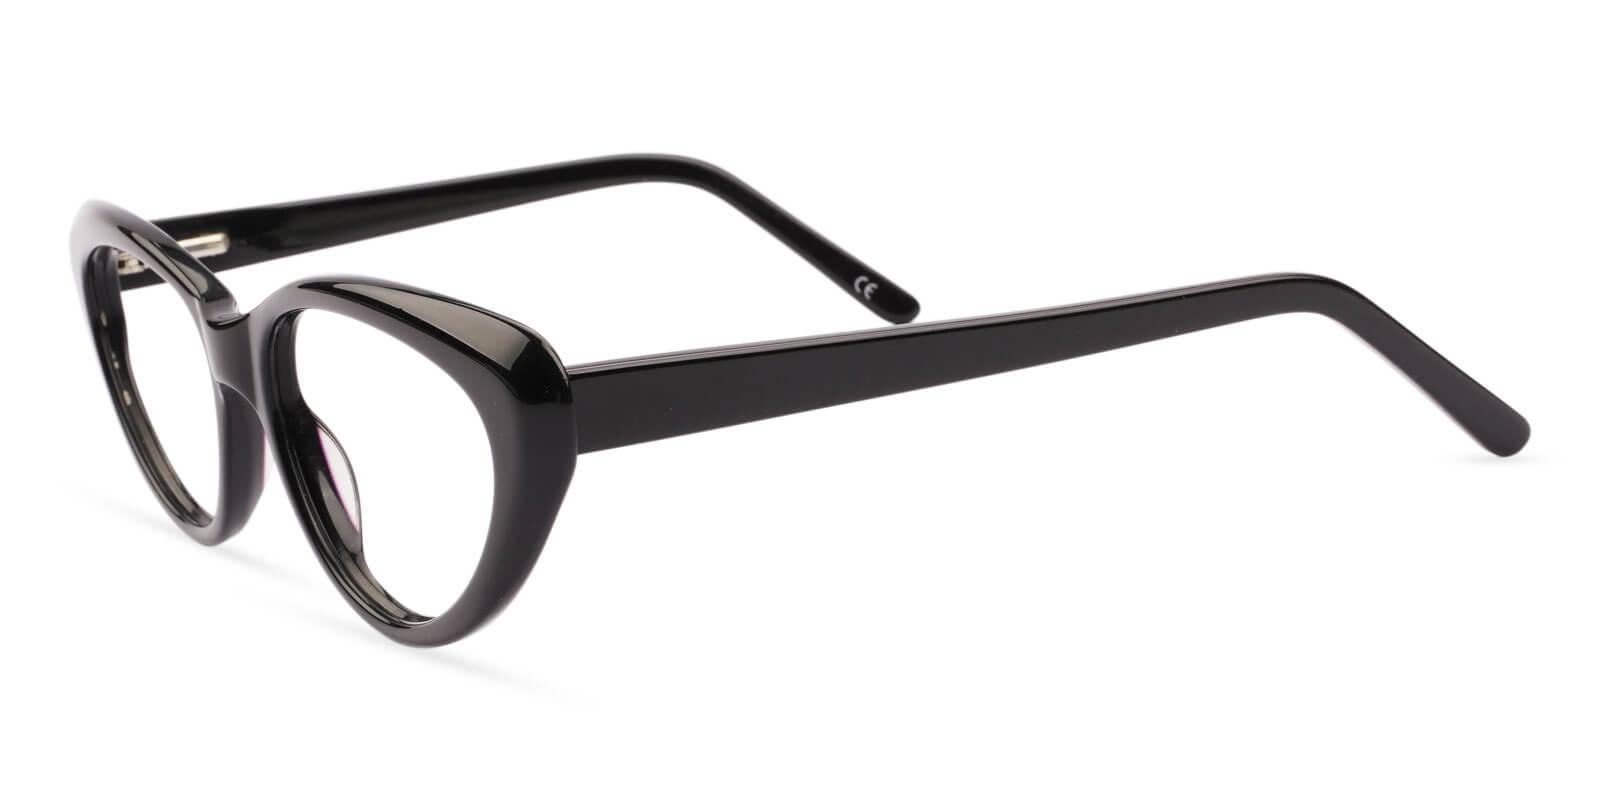 Irene Black Acetate SpringHinges , UniversalBridgeFit , Eyeglasses Frames from ABBE Glasses